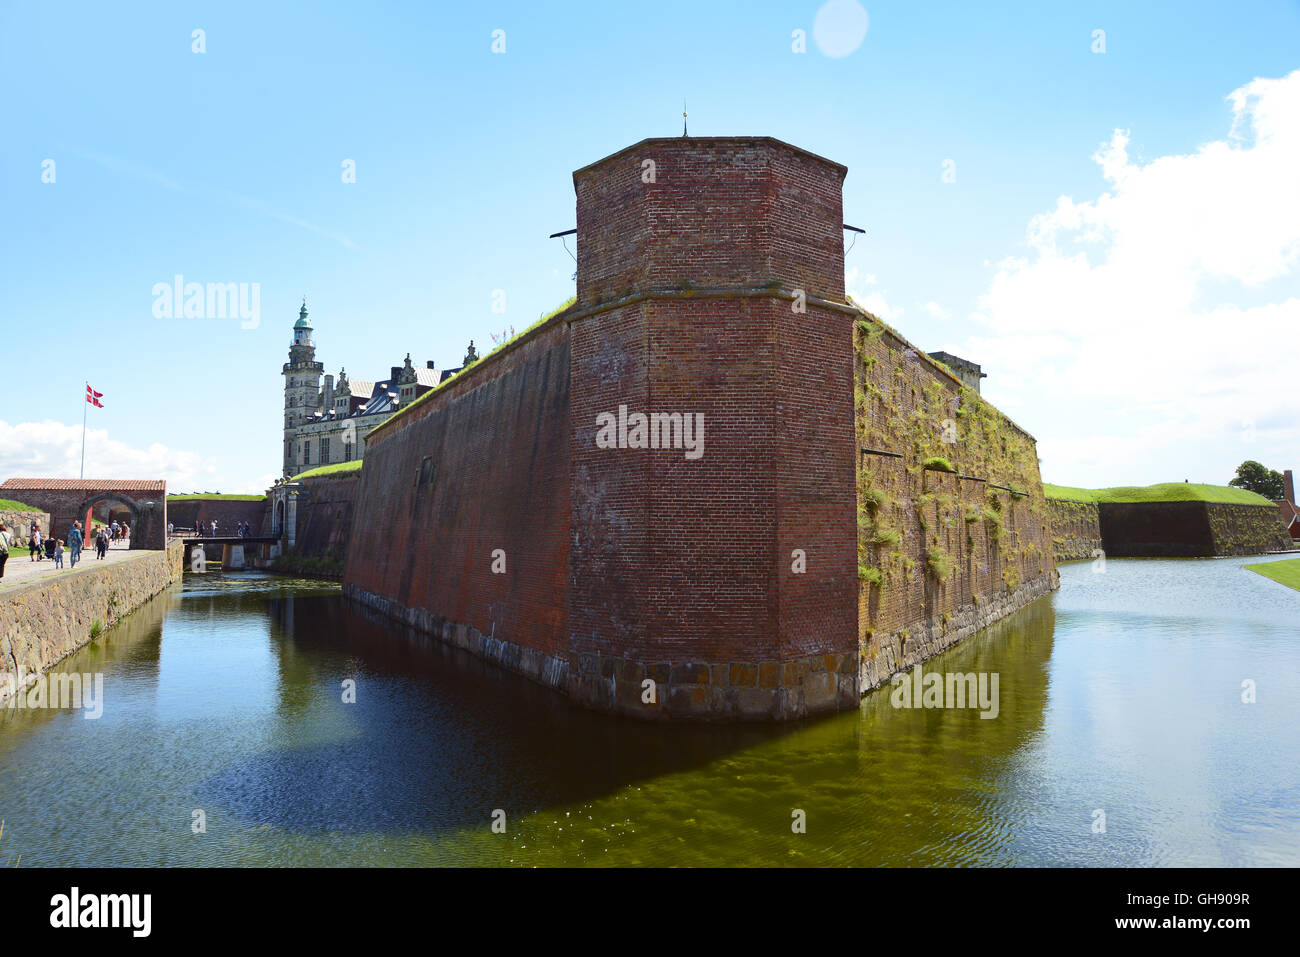 Helsingor, Denmark - July 19, 2016: Kronborg Castle of Hamlet in Denmark - Stock Image